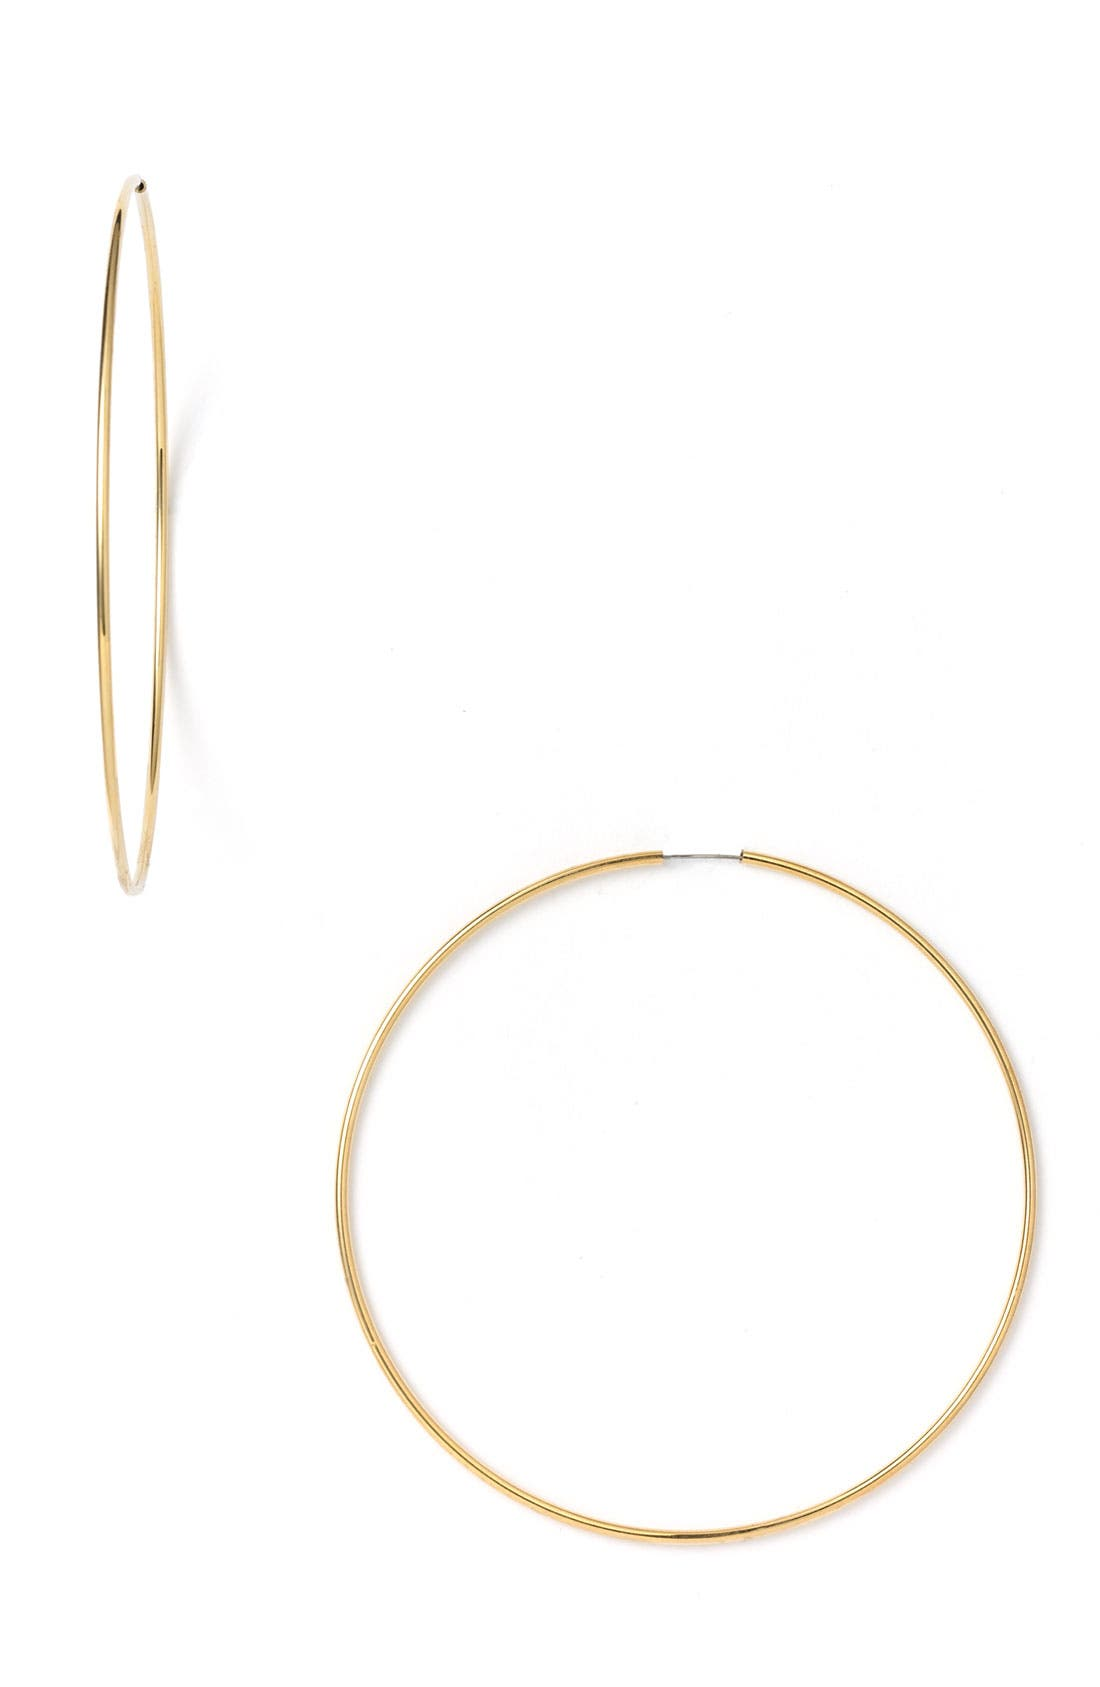 Alternate Image 1 Selected - Nordstrom Endless Oversized Hoop Earrings